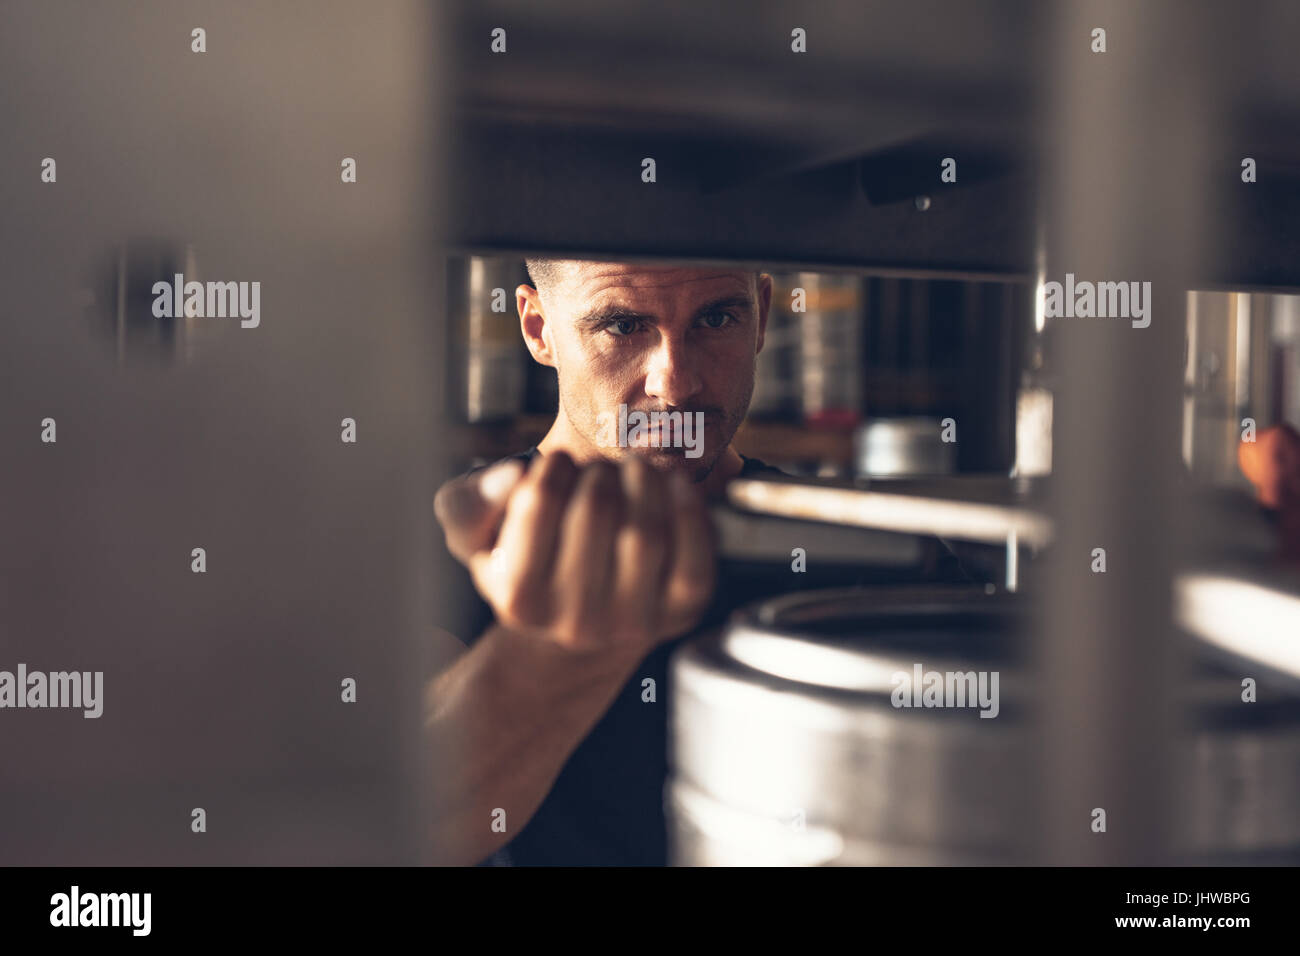 Man working in brewery factory. Employee of production line putting aluminum keg on filling line. - Stock Image